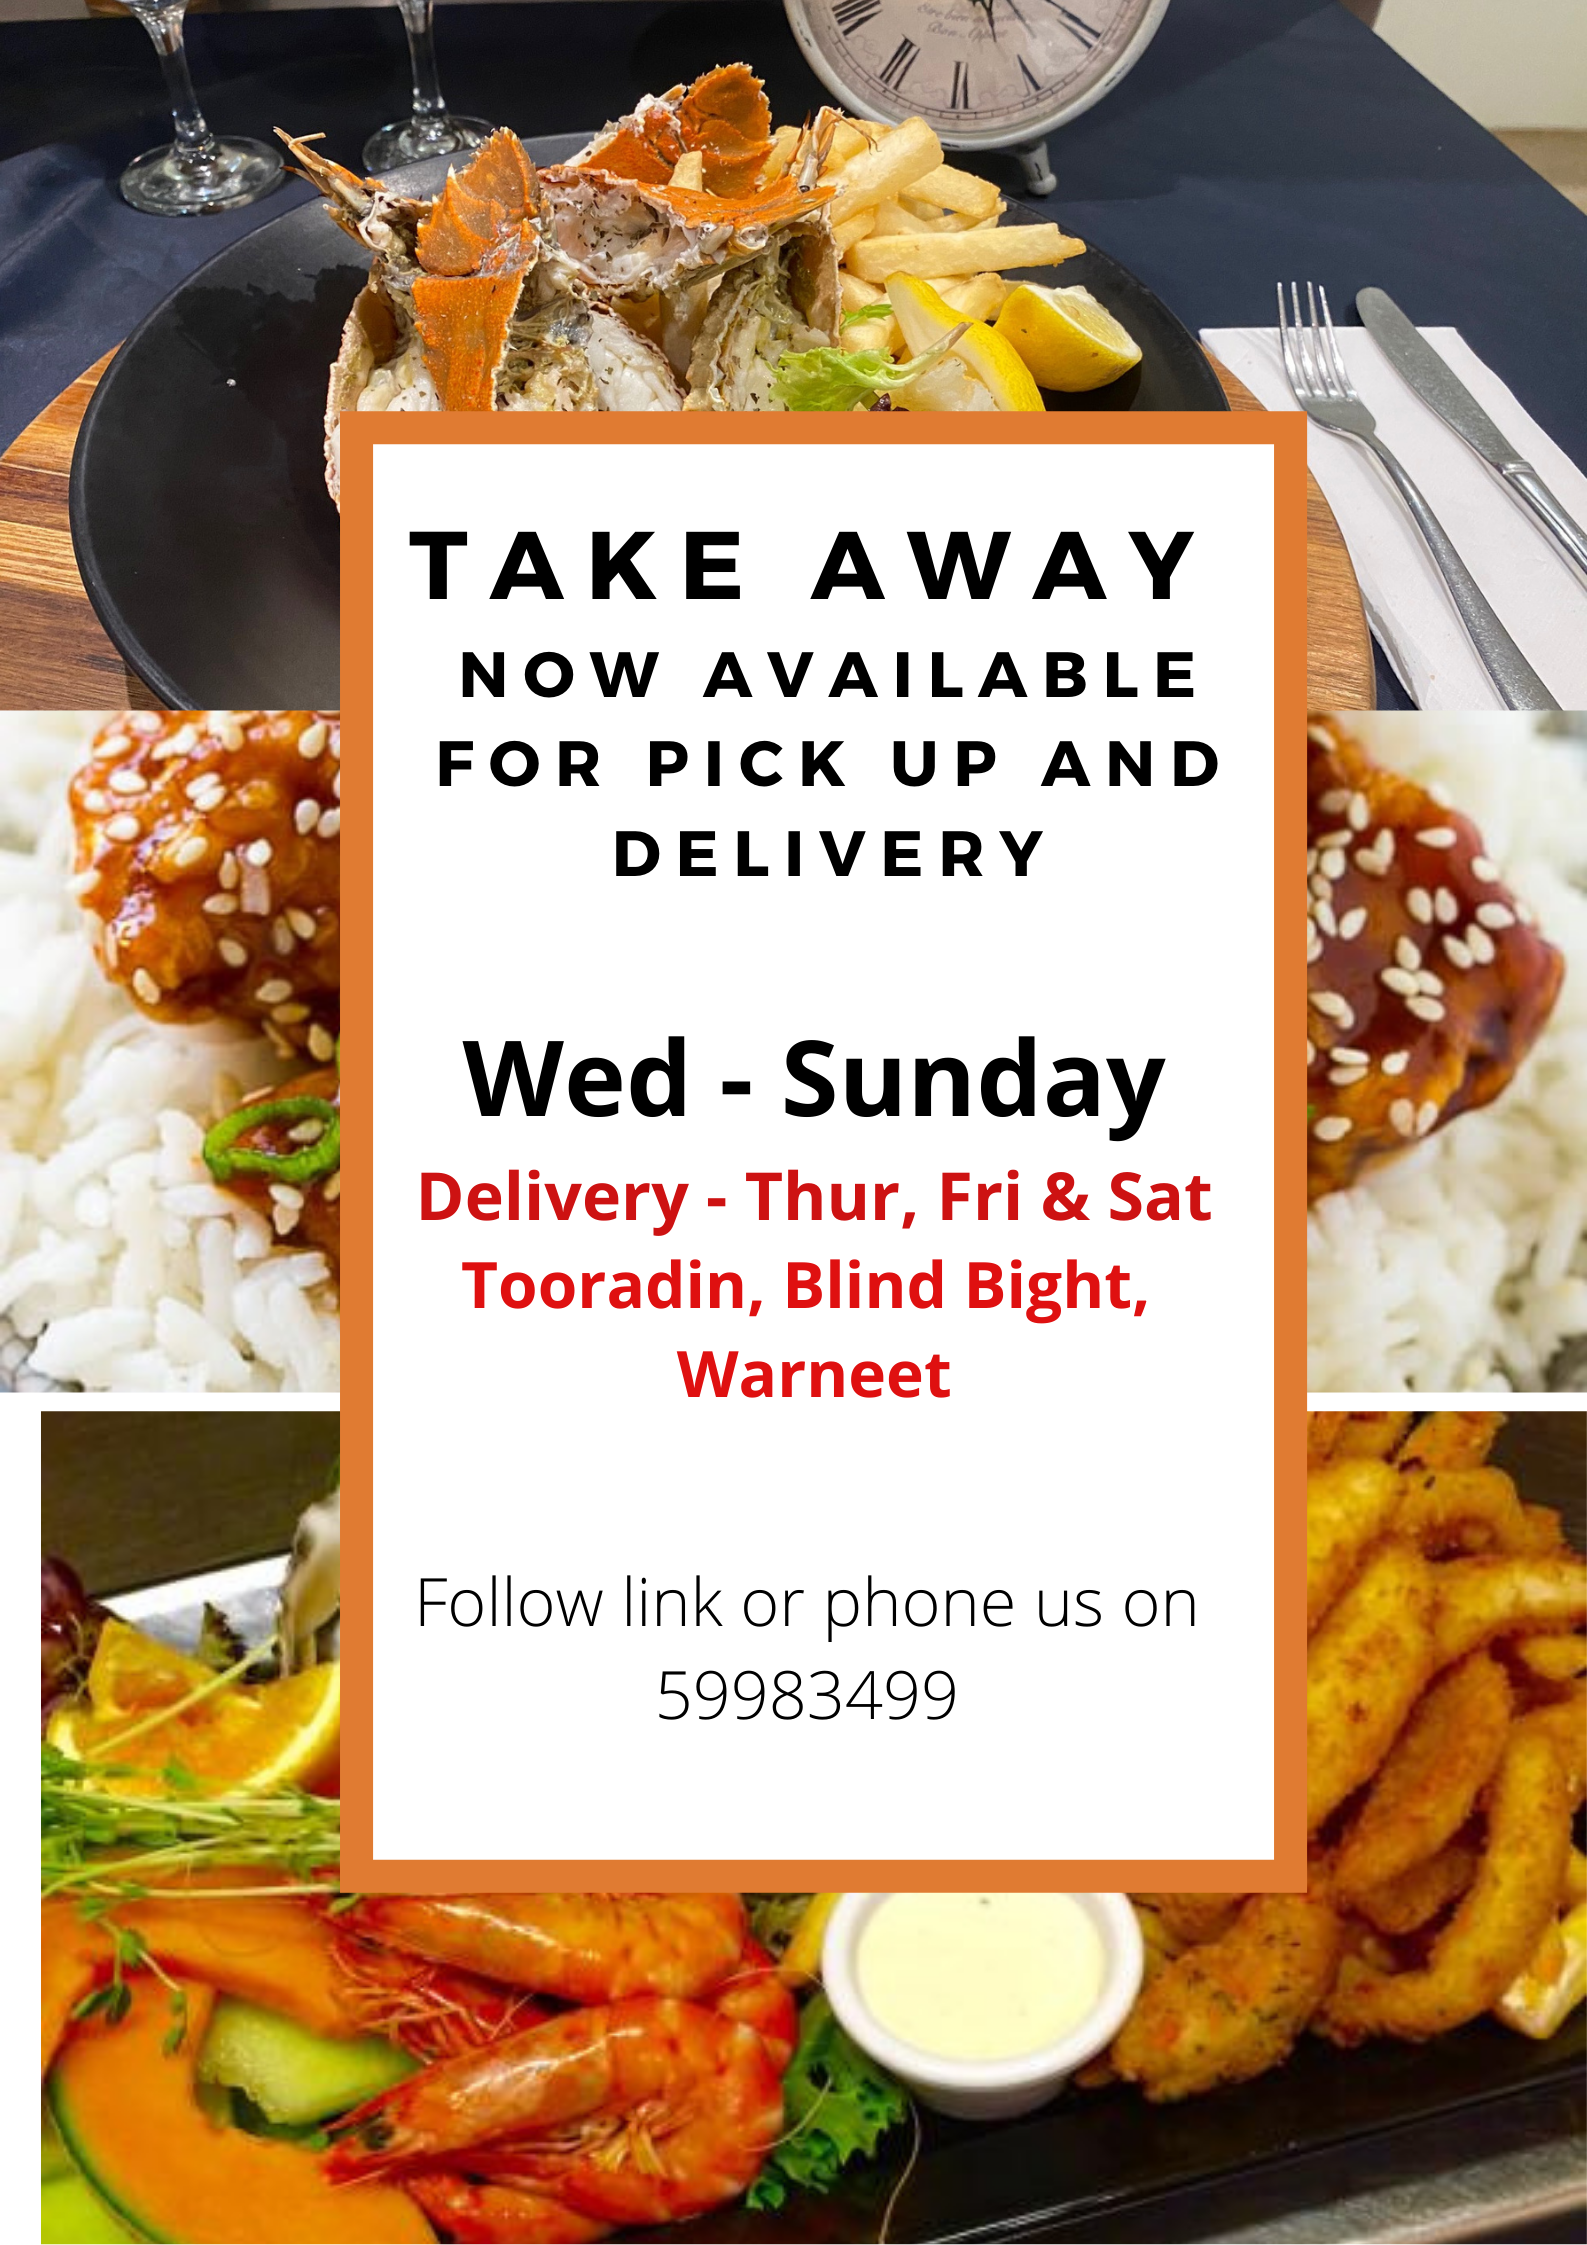 TAKE AWAY NOW AVAILABLE FOR PICK UP AND DELIVERY